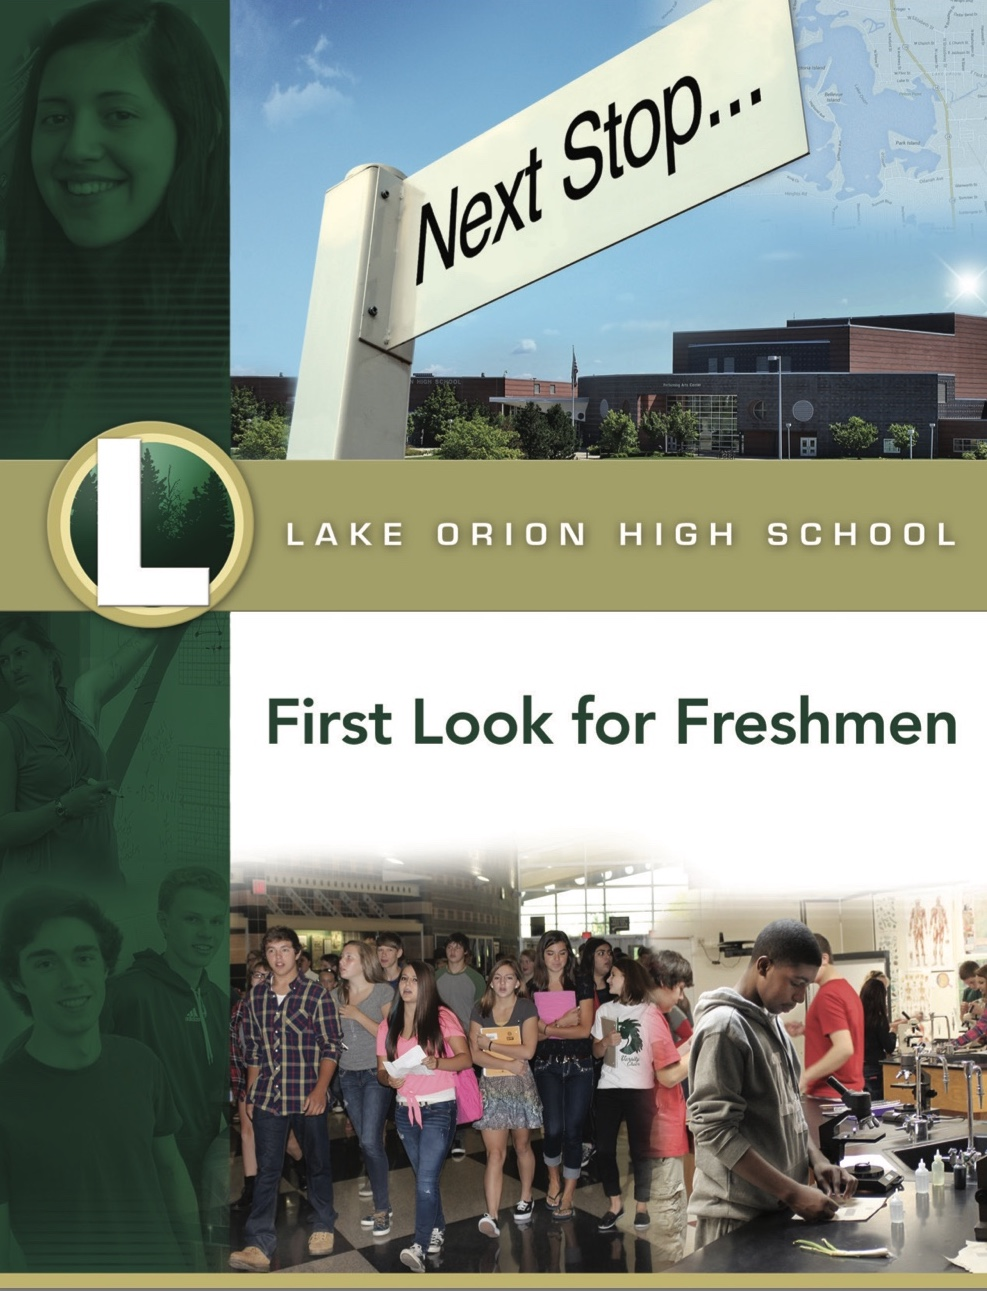 First Look for Freshmen